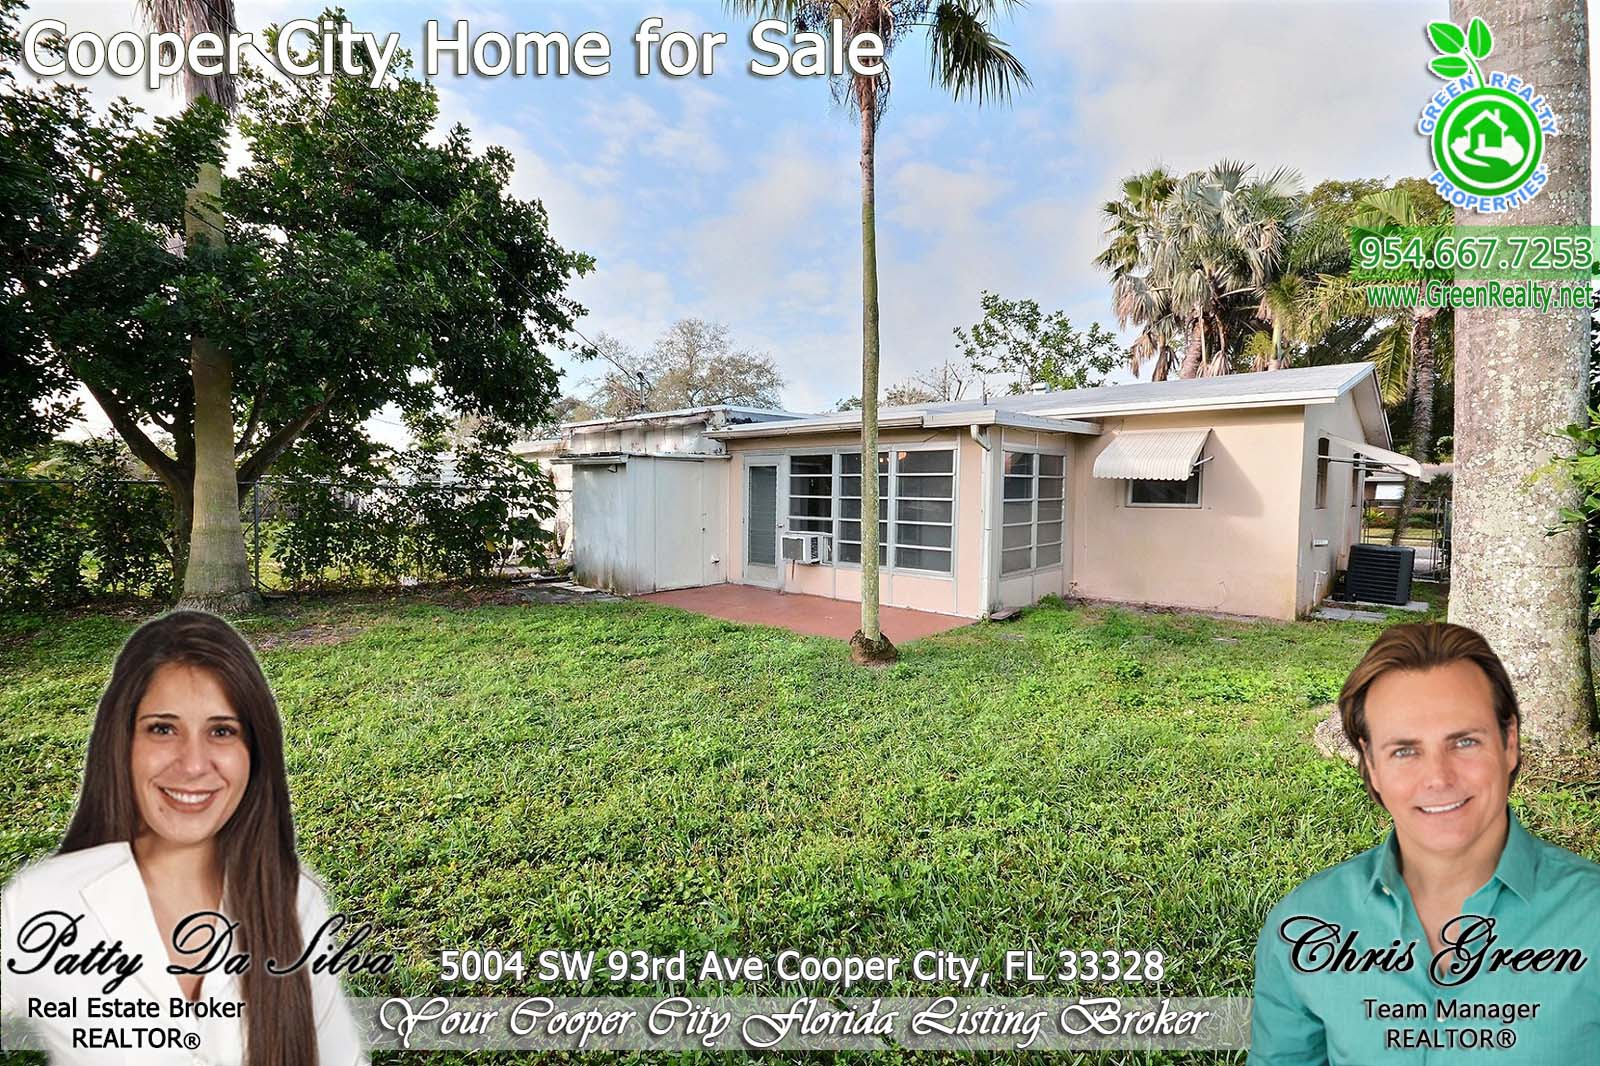 20 Homes For Sale in Cooper City FL (4)